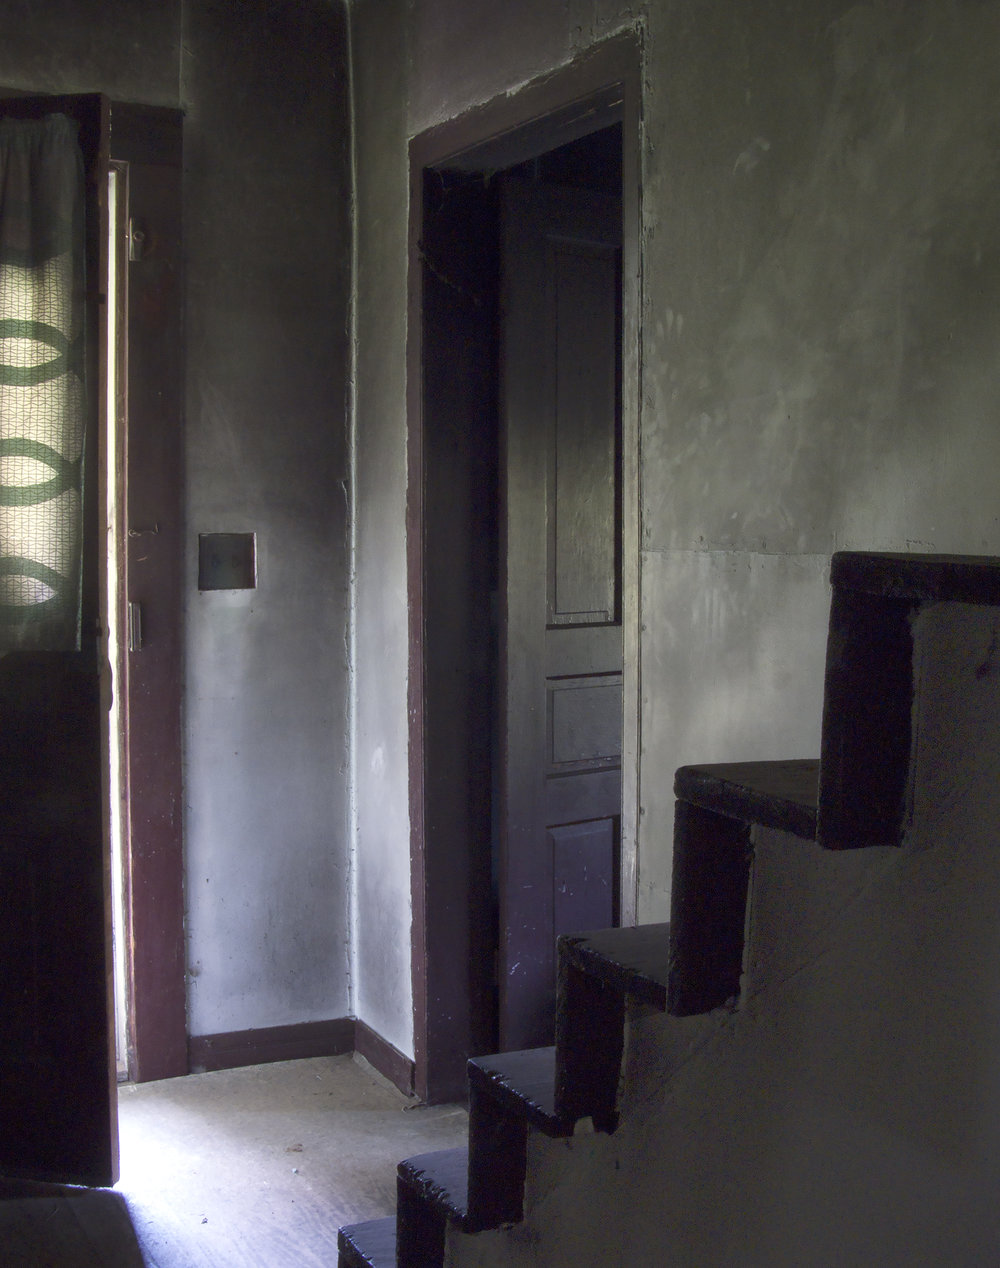 Carol-Lawrence-Hallway-from-Kithen-11-by-14-step-lighter.jpg